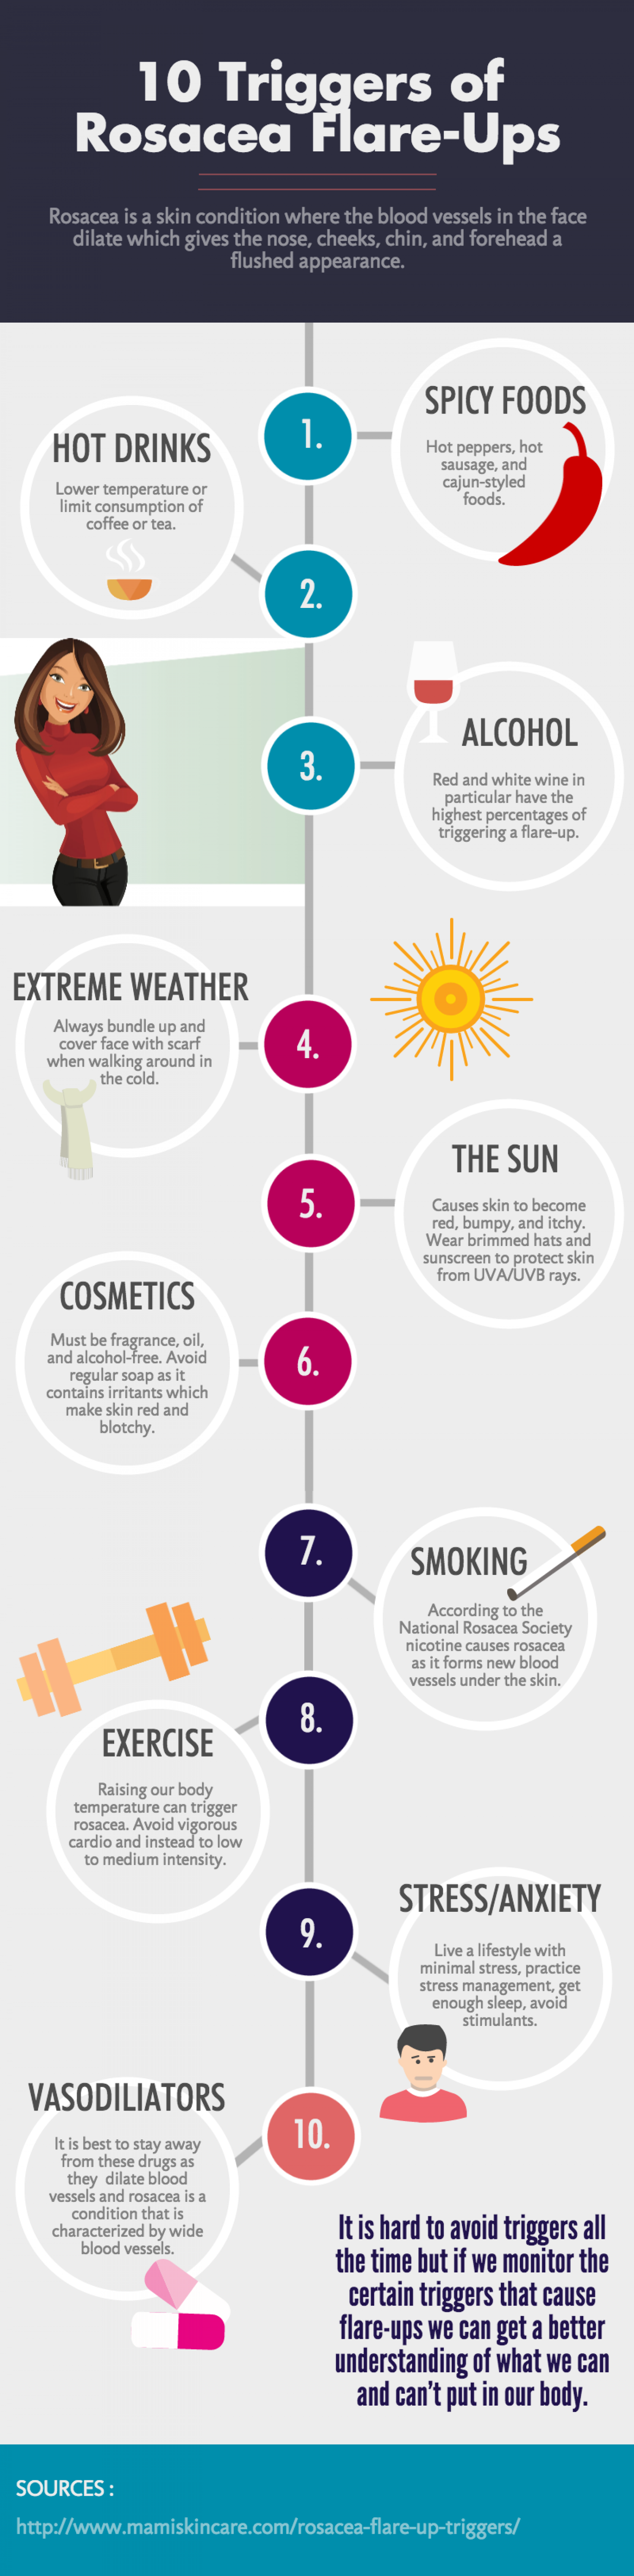 10 Triggers of Acne Rosacea Flare-Ups Infographic